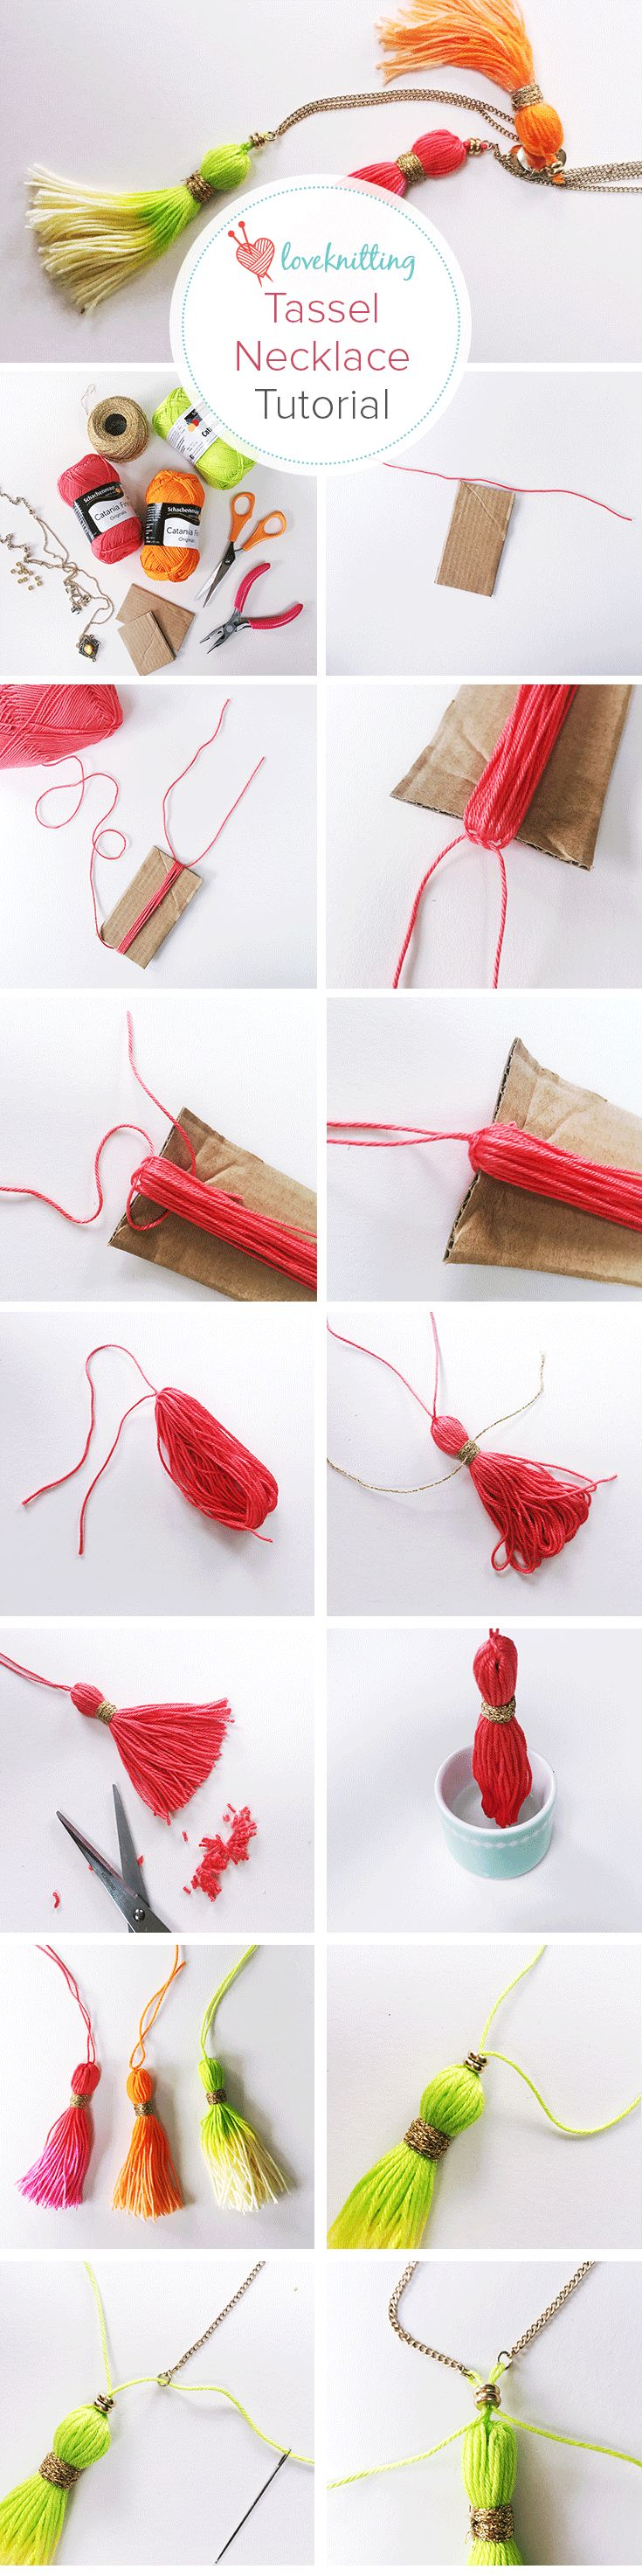 FREE tassle necklace tutorial from SewYeah up on our LoveKnitting blog!